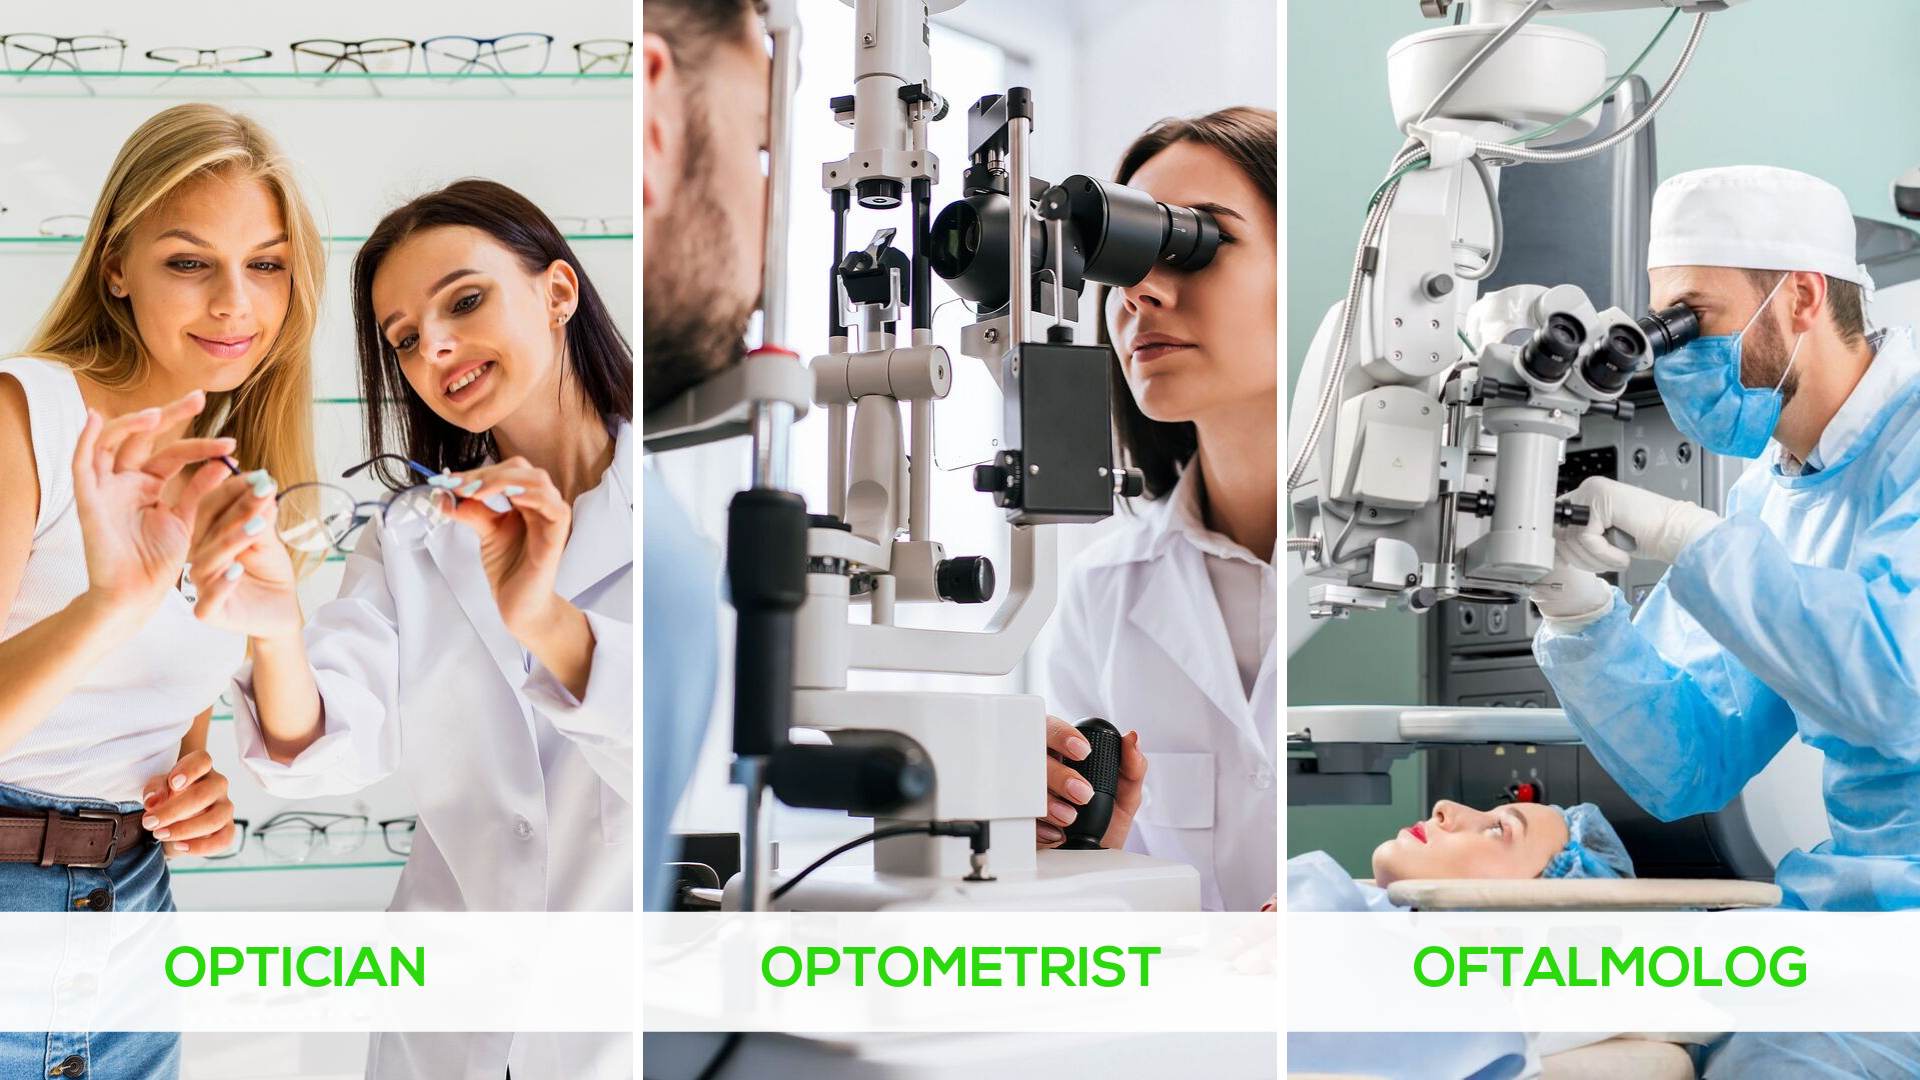 Diferente Optician vs. Optometrist vs. Oftalmolog